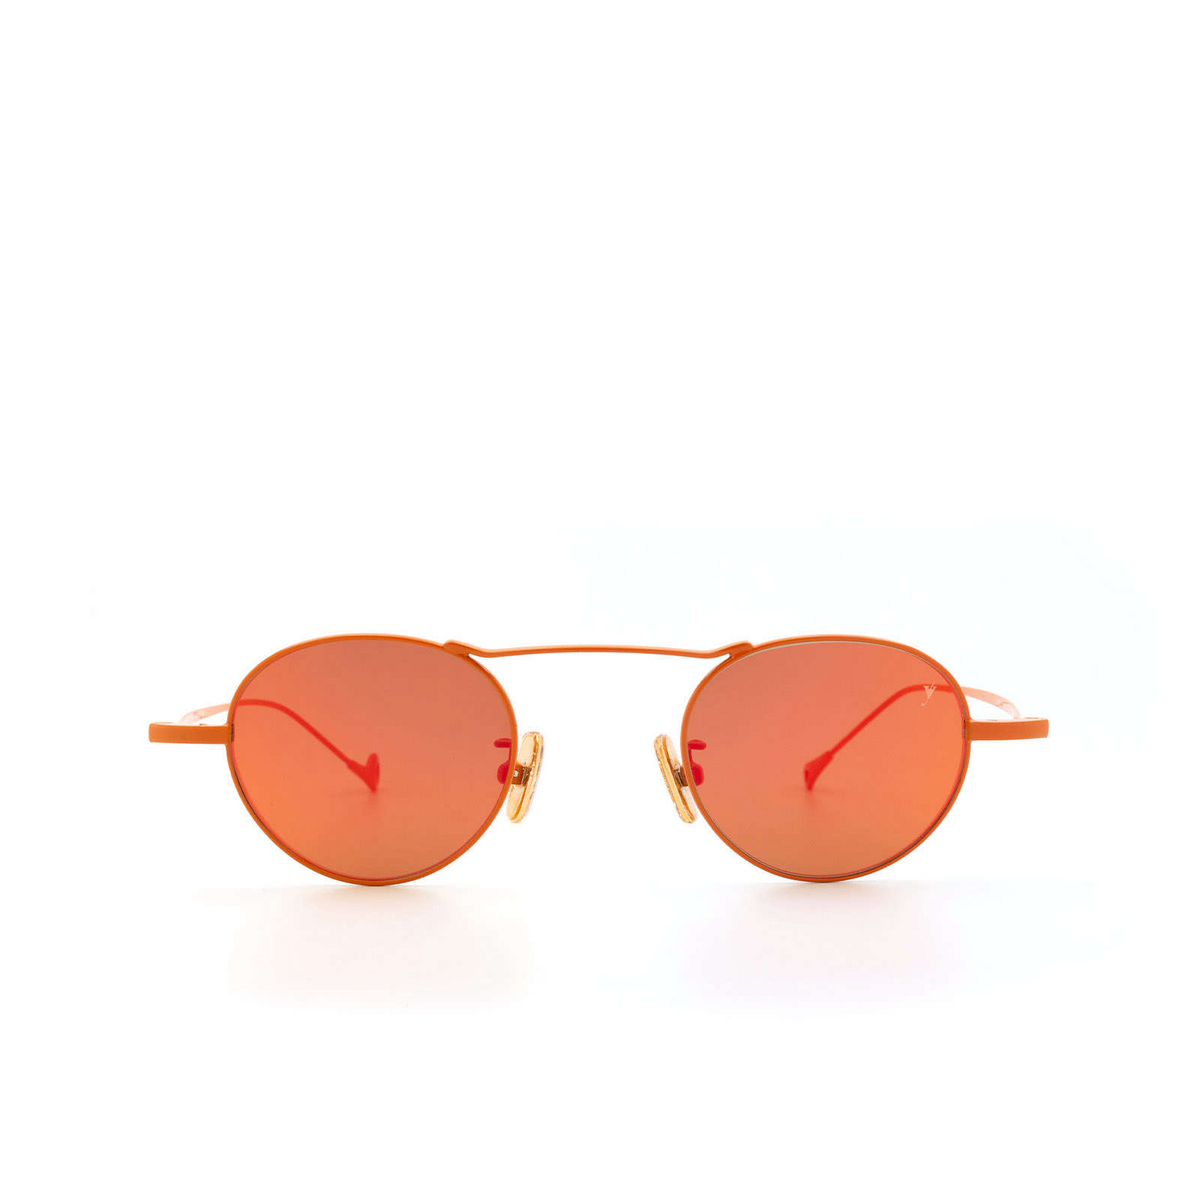 Eyepetizer® Round Sunglasses: Yves color Orange C.13-37 - front view.